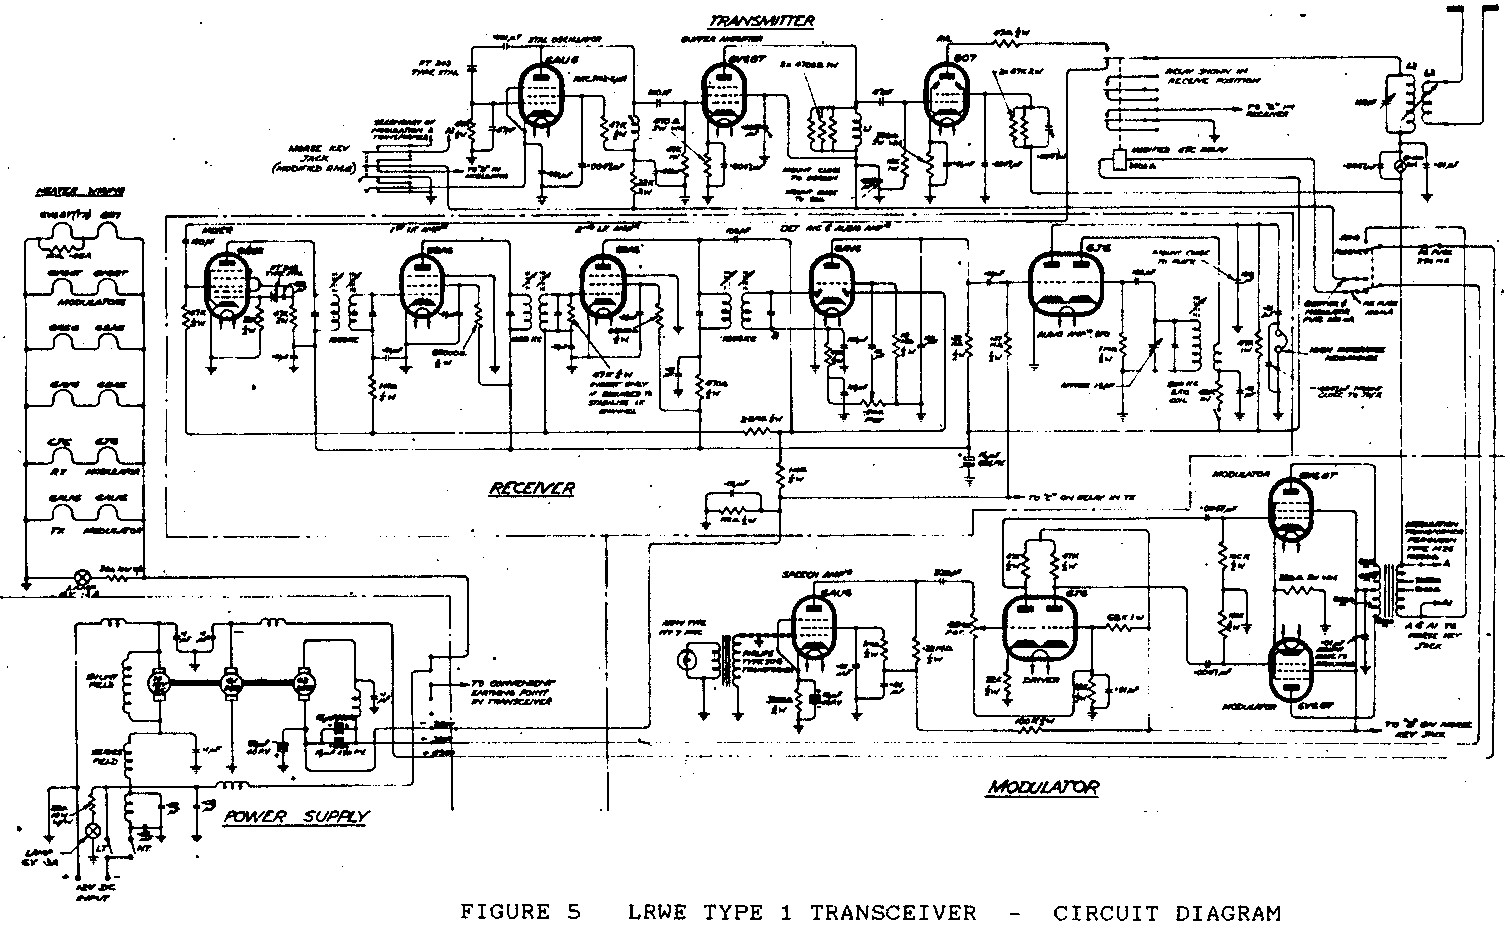 Transceiver Circuit Diagram Can Wire Vk6wia News Broadcast Circuits Moblile Radio At Woomera Range Ssb Vehicles Were Provided With Whip Aerials For